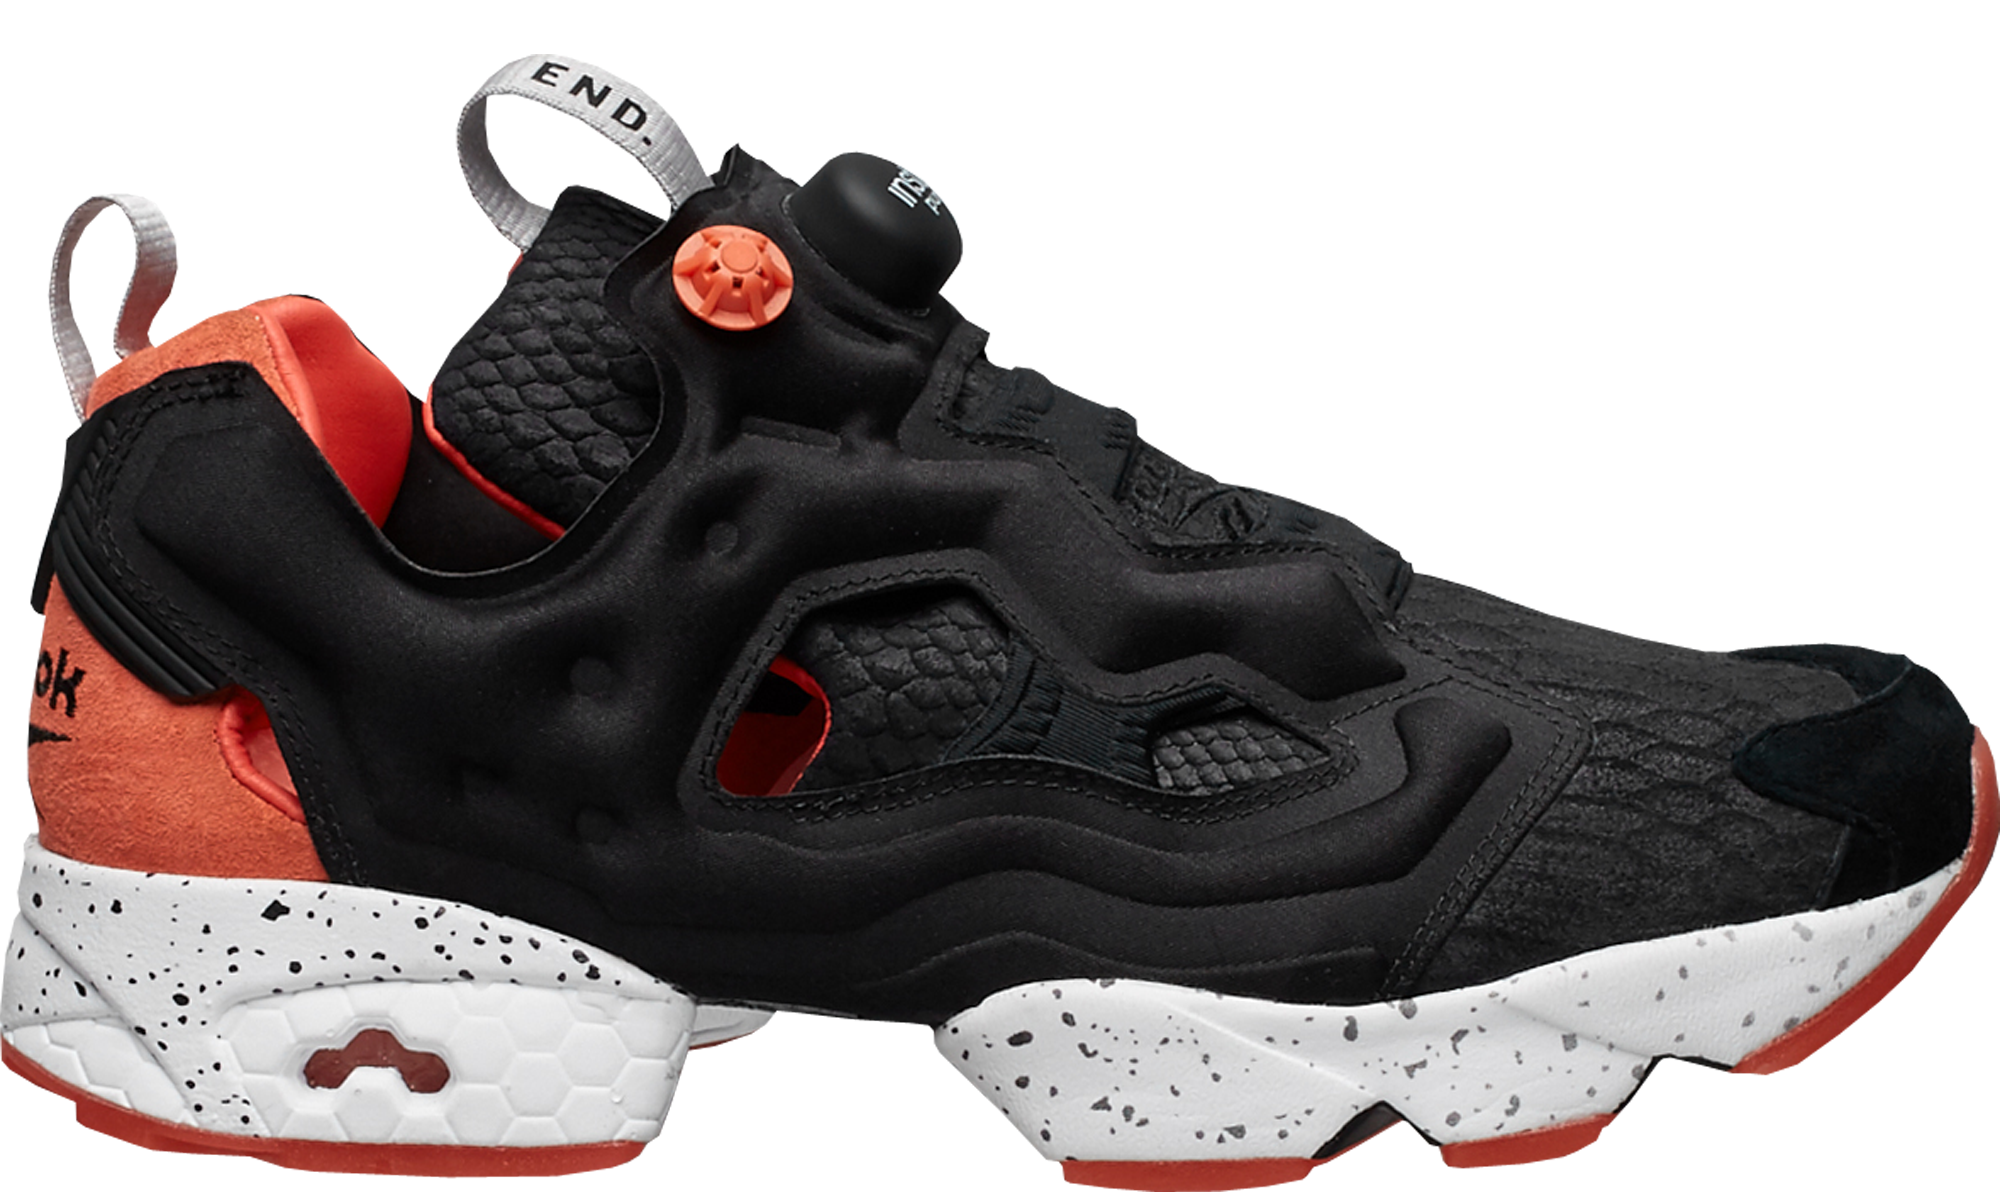 4e159b1c END x Reebok Instapump Fury Black Salmon - StockX News